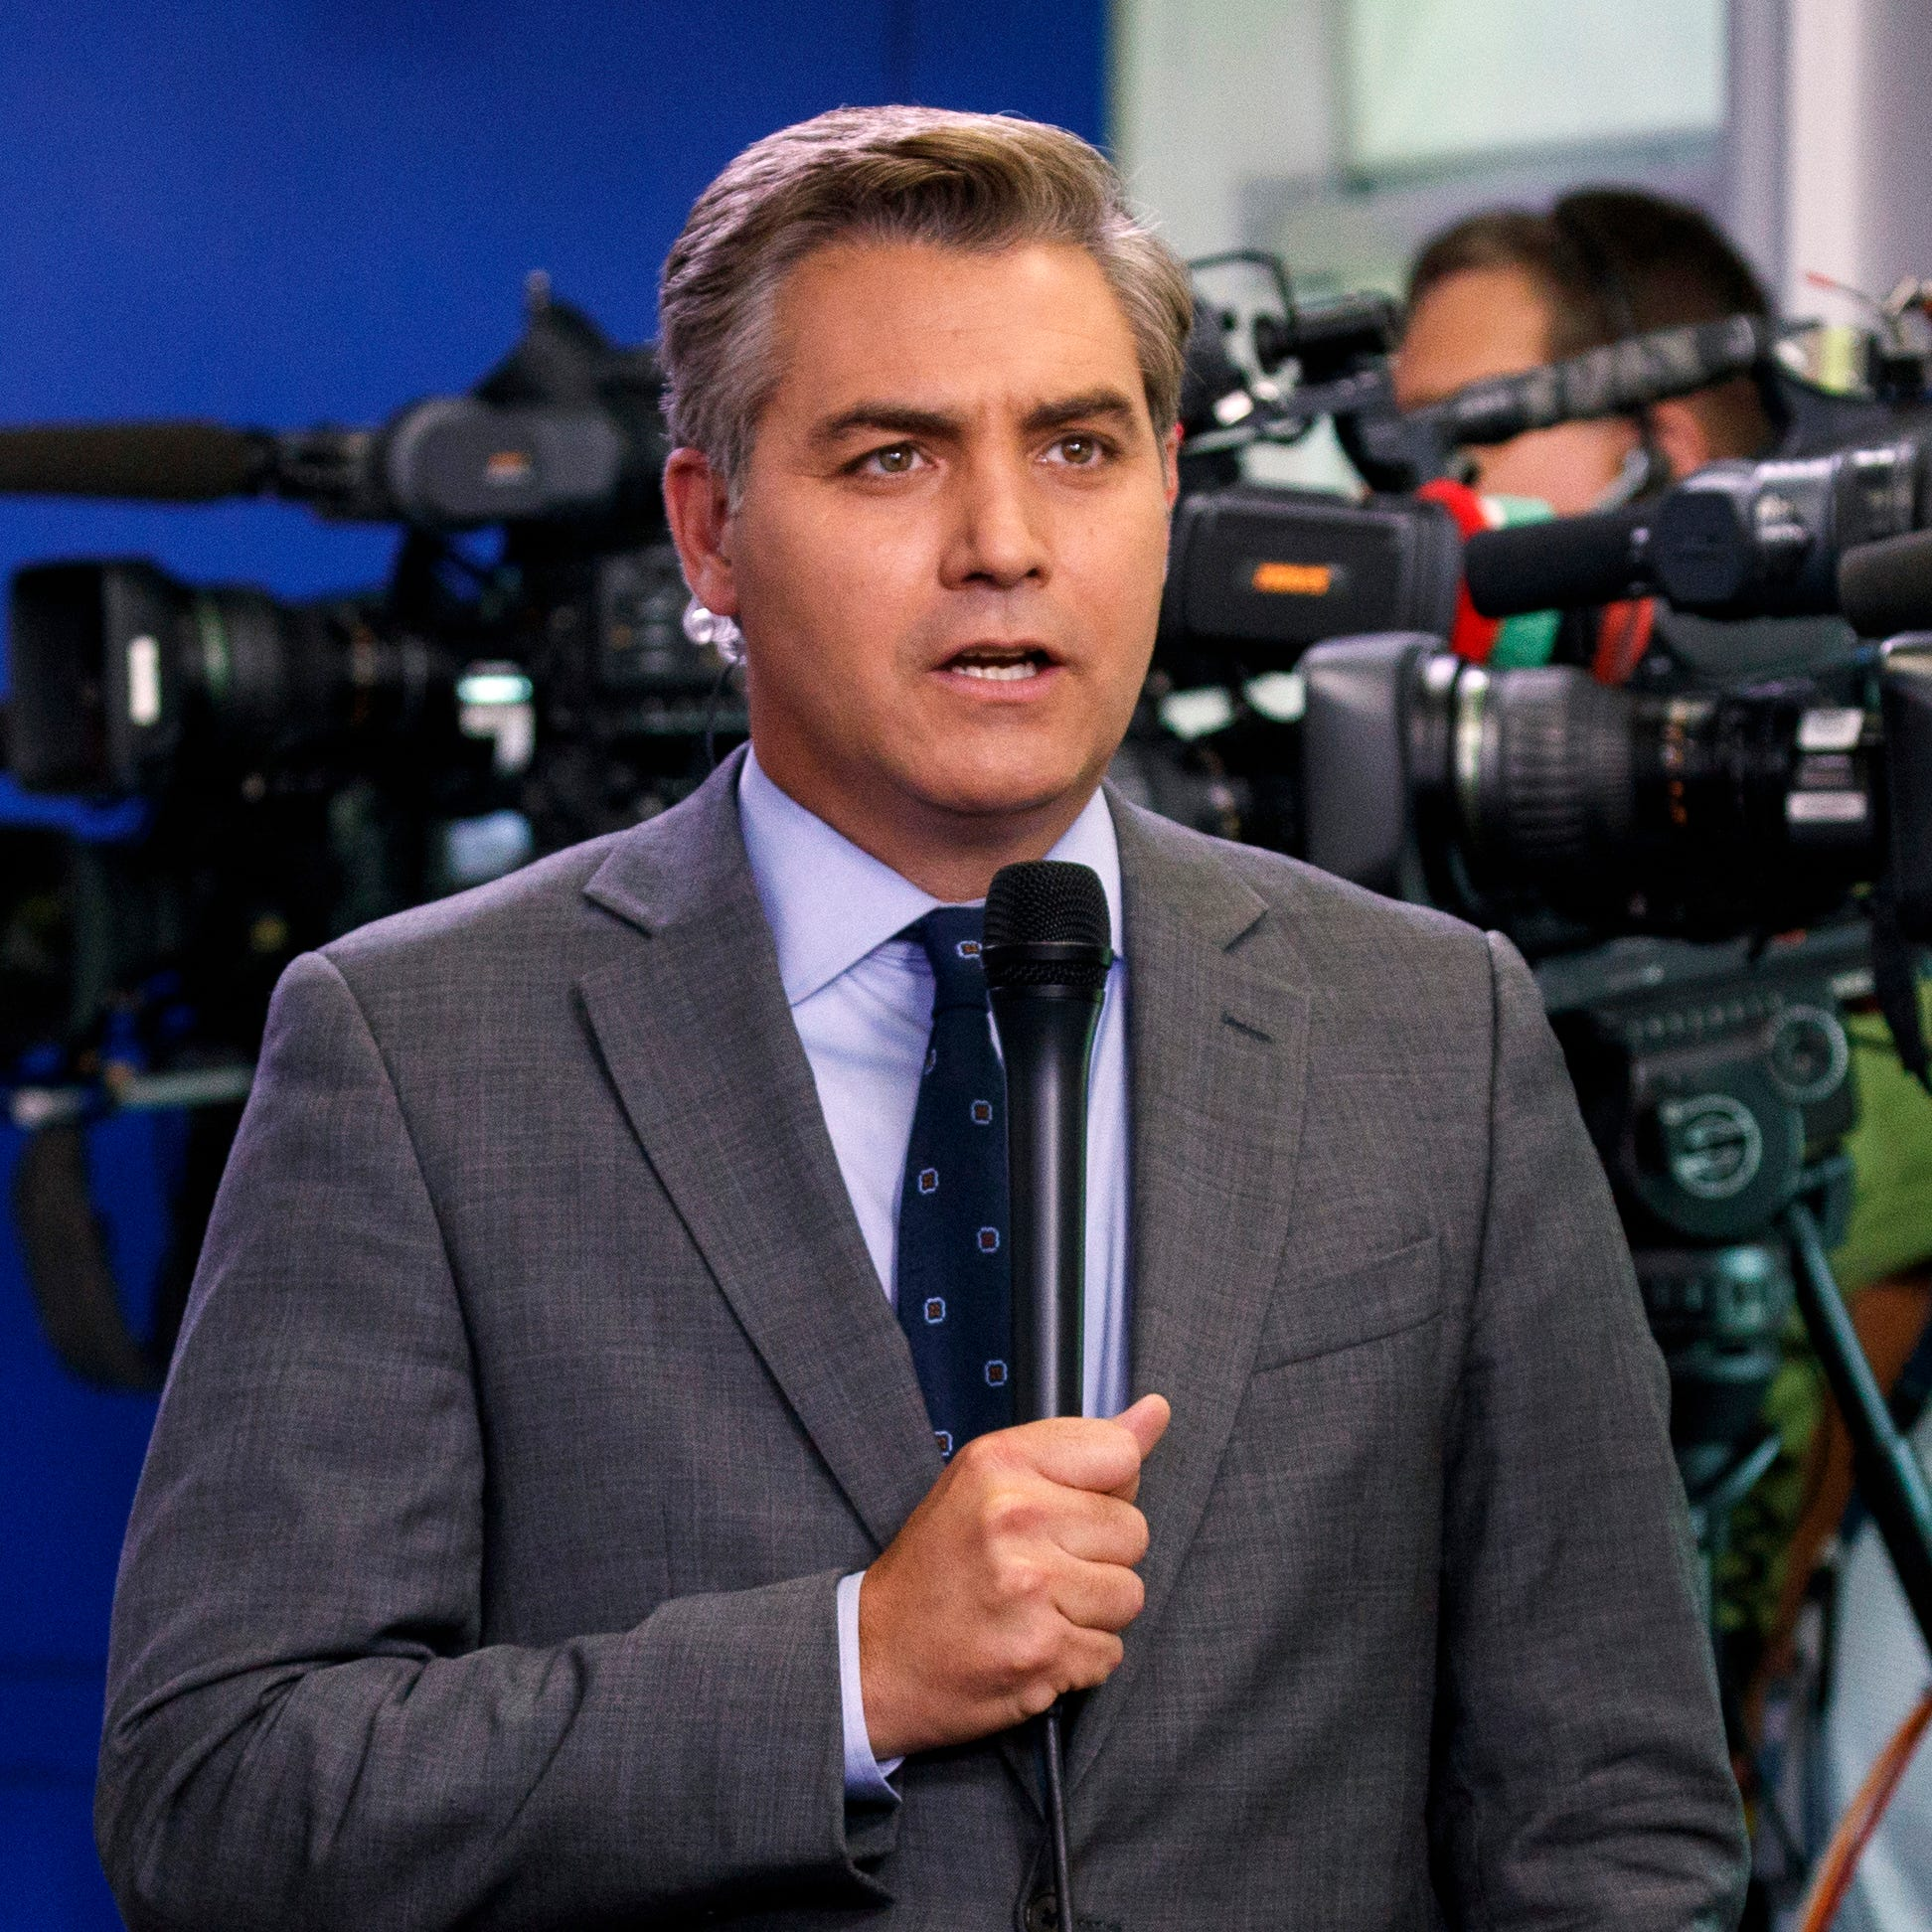 CNN correspondent Jim Acosta is pictured before a daily press briefing at the White House.